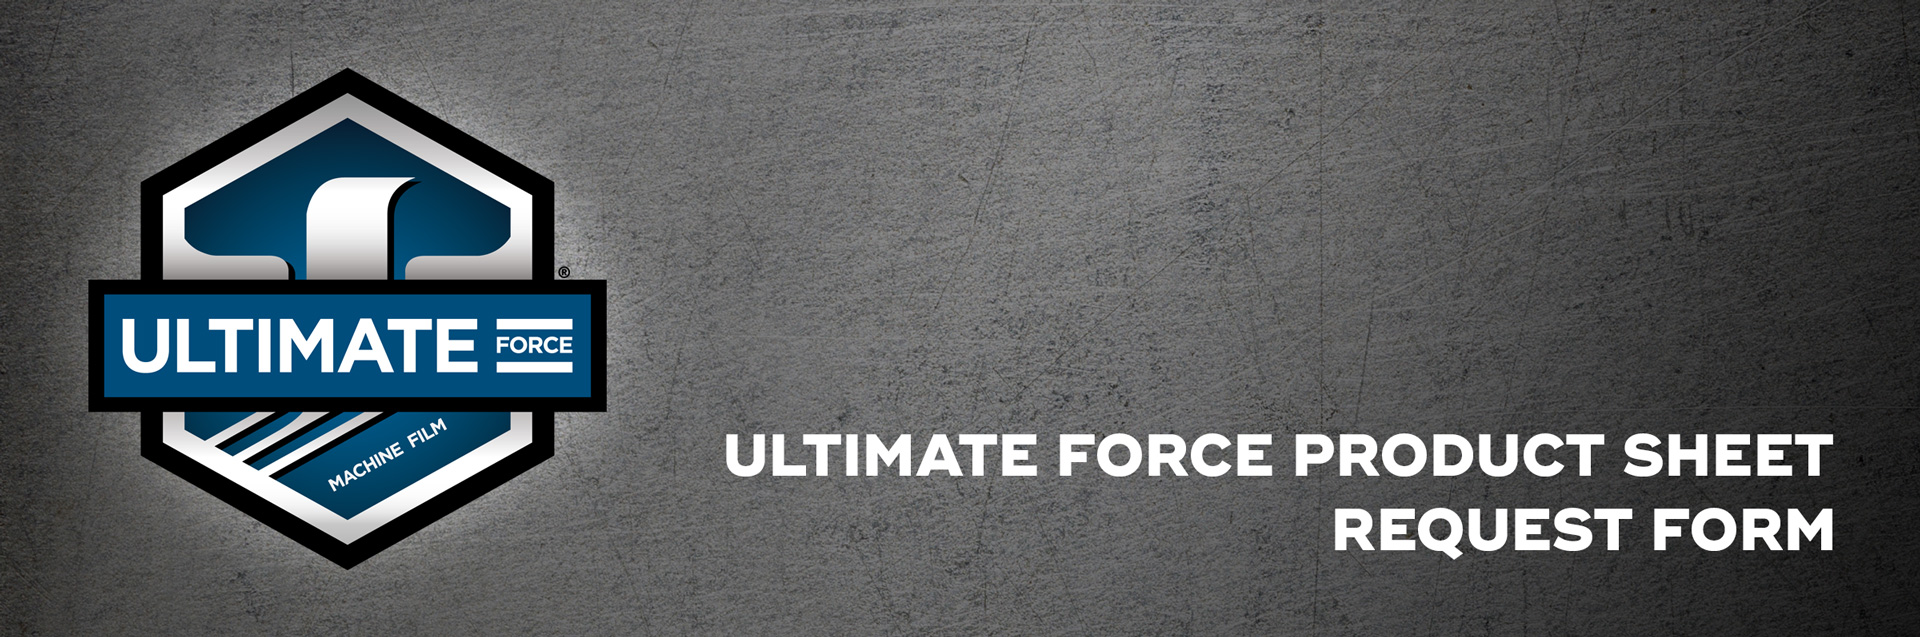 Ultimate-Force-Product-Sheet-Request-Form